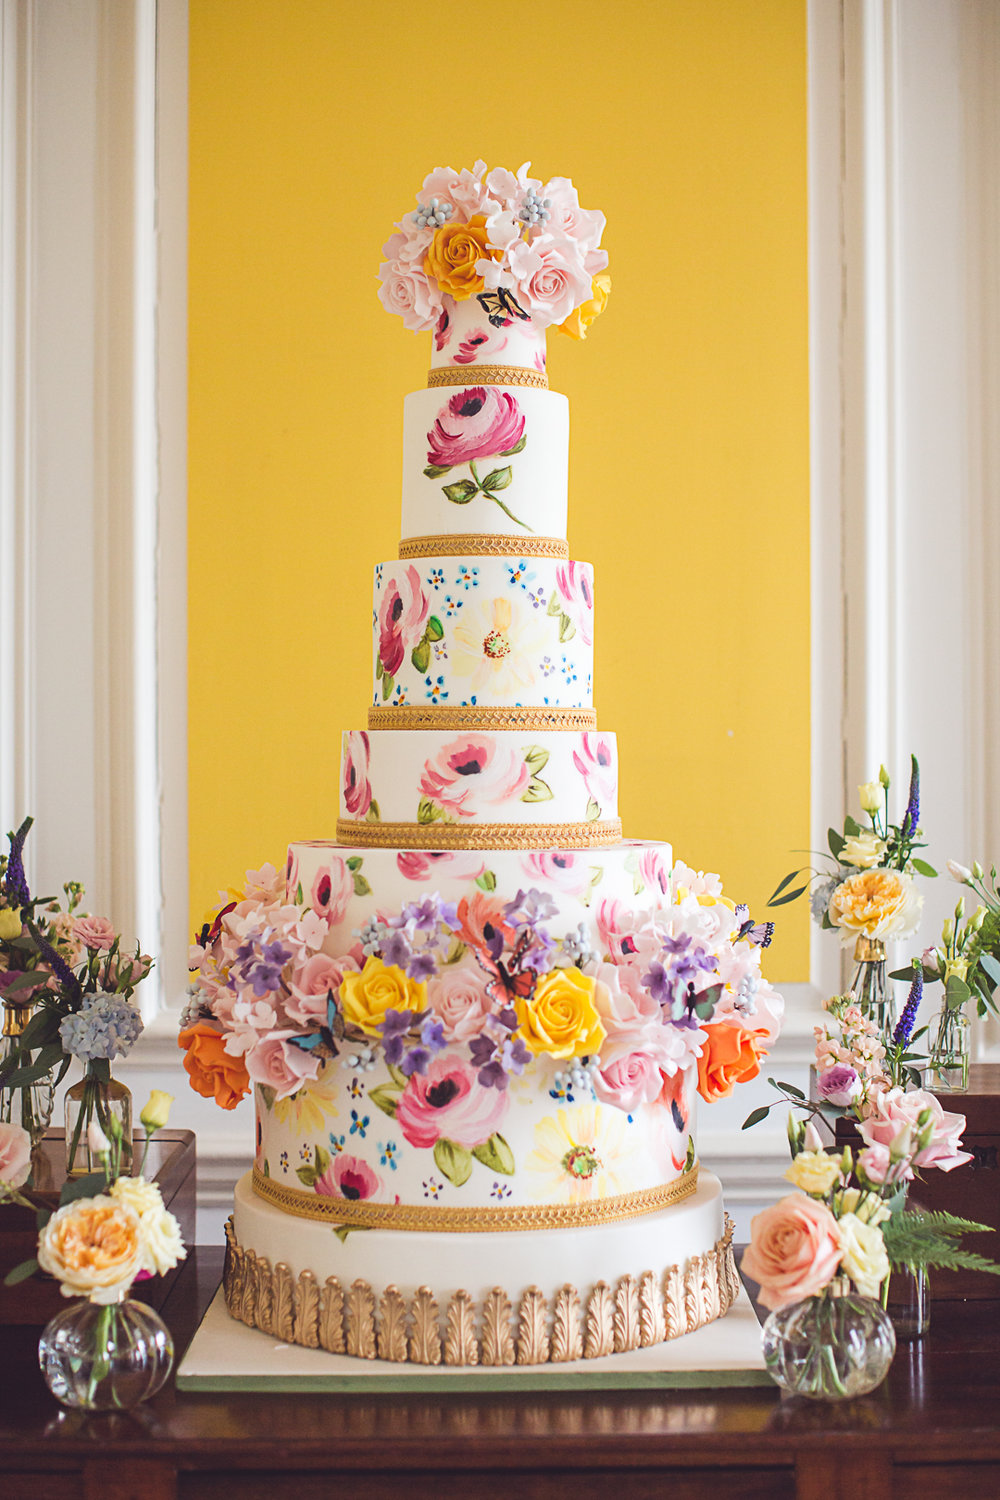 Stunning hand painted cakes by Elizabeth's Cake Emporium mingle perfectly with flowers by Indeco Flowers